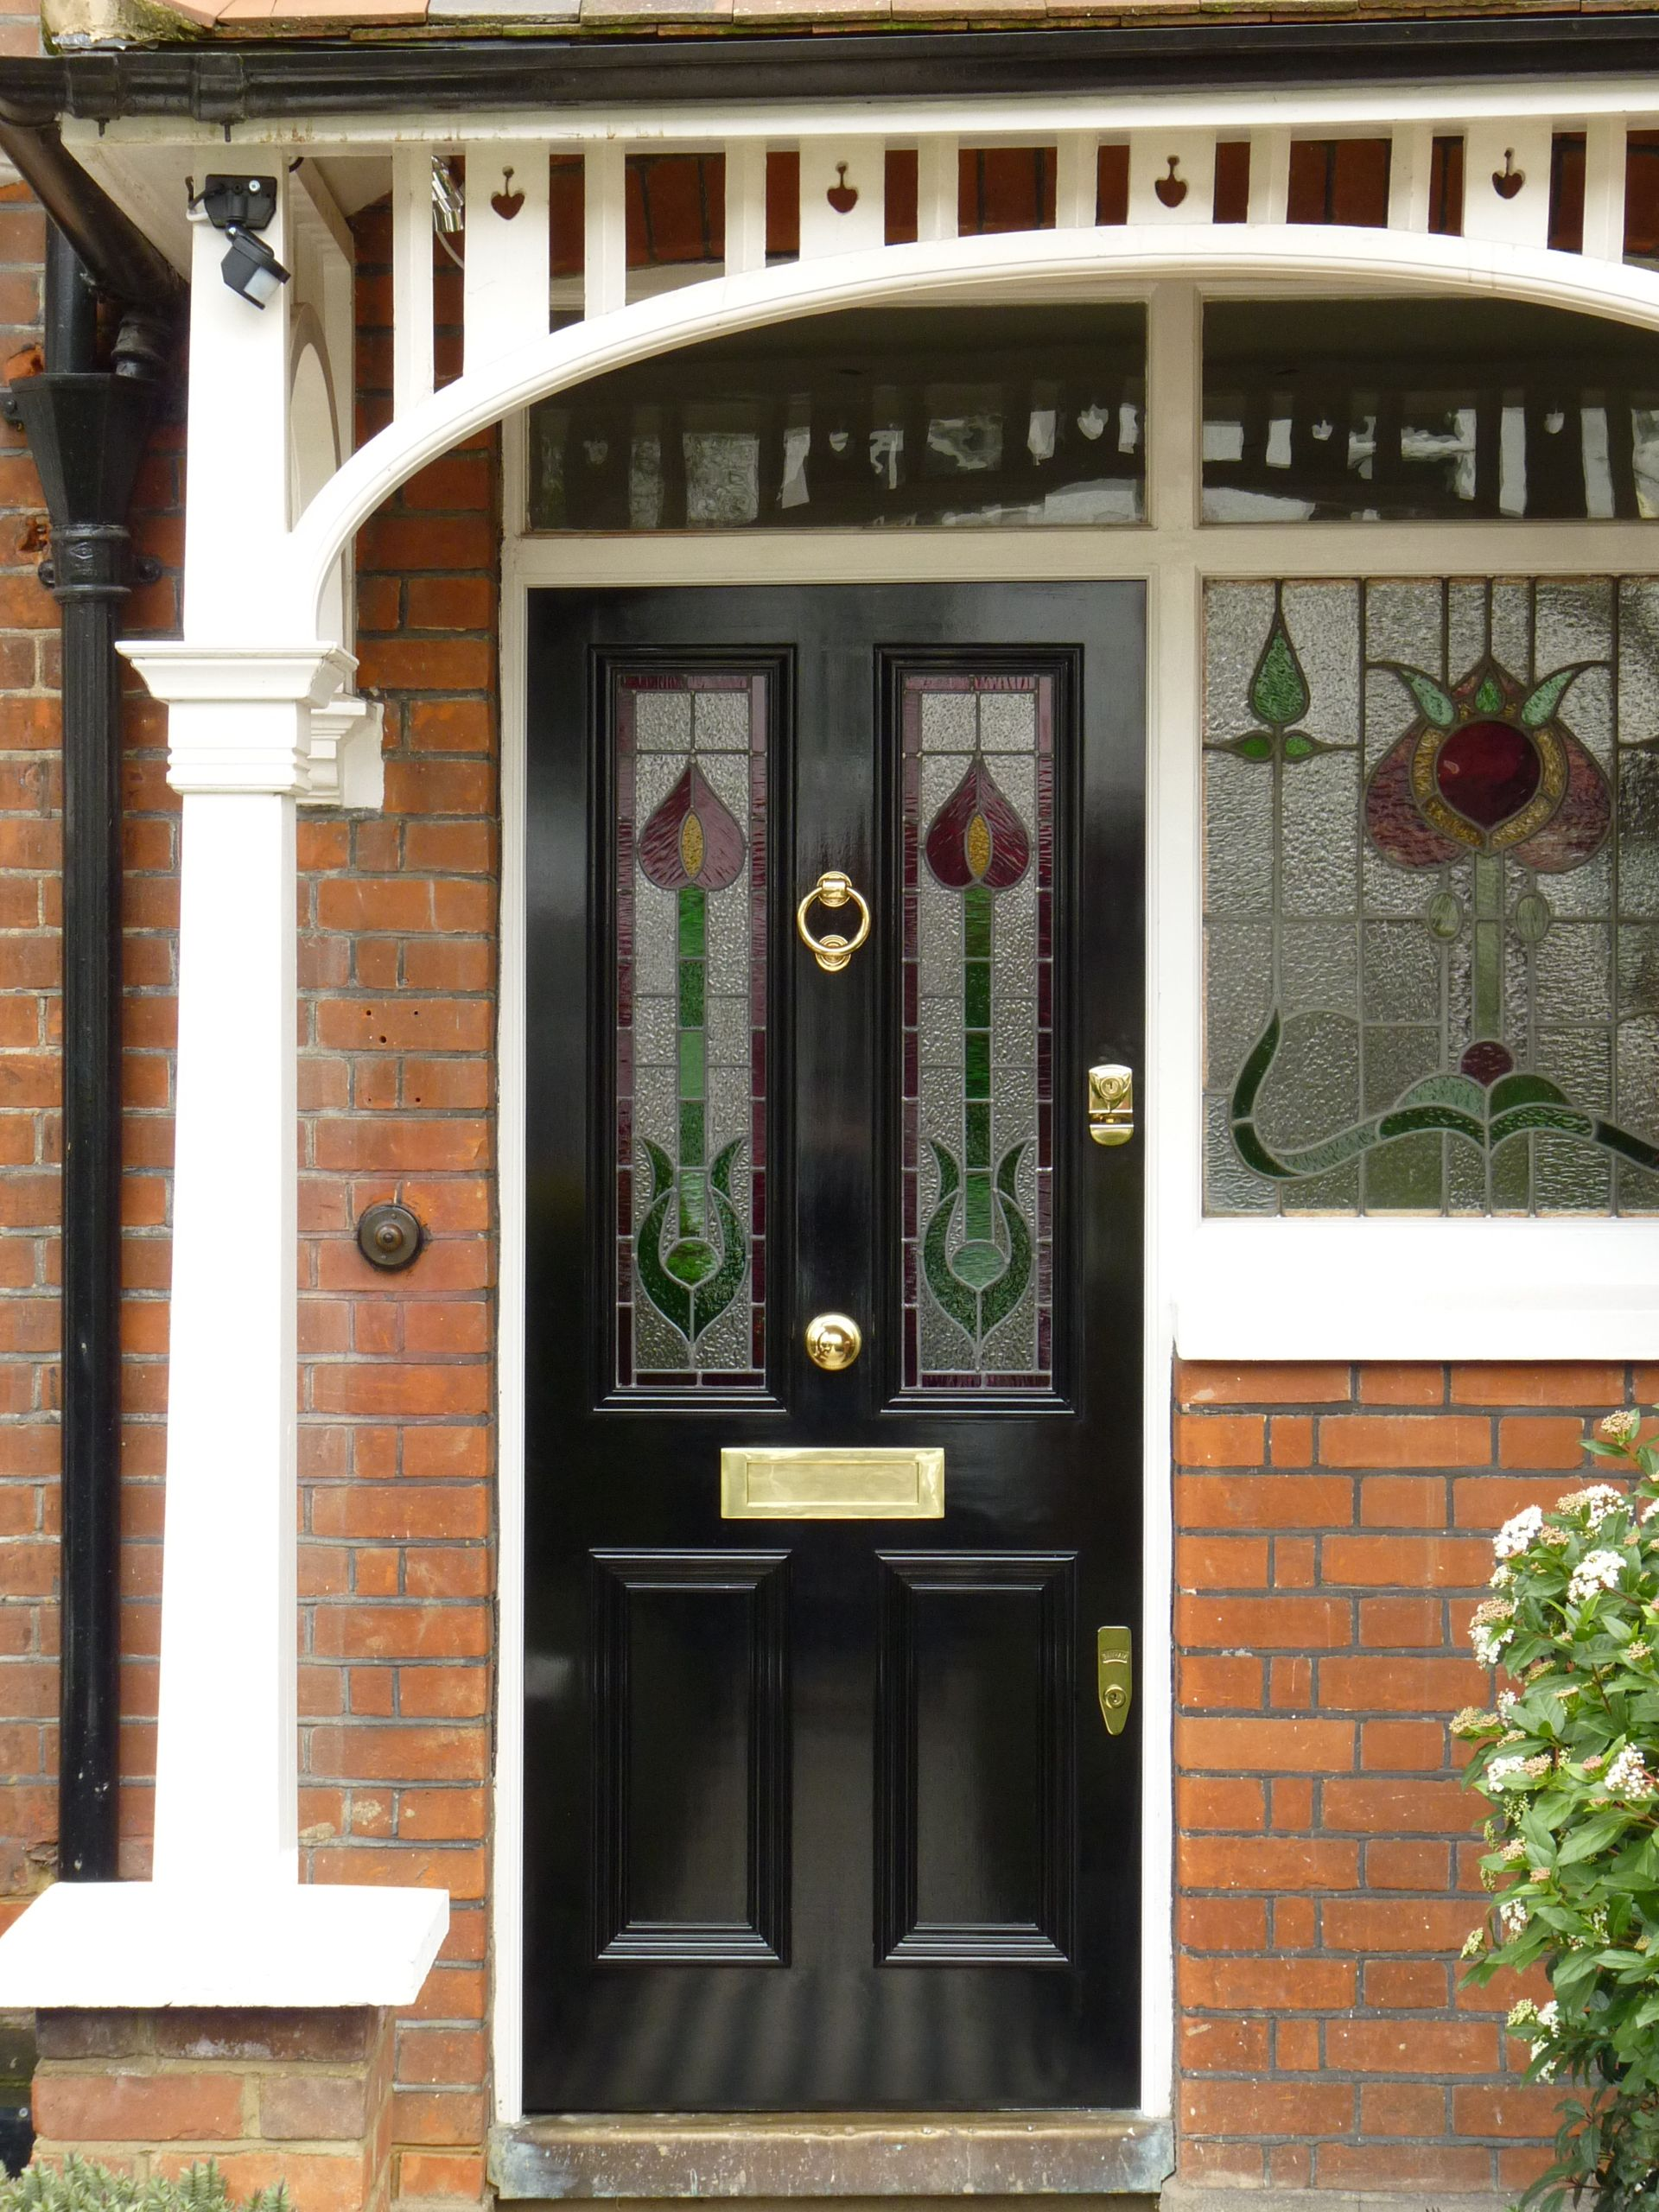 Red Rose Leadlighting Within A Black Viictorian Style London Door With Images Front Doors With Windows Glass Entrance Doors Stained Glass Door